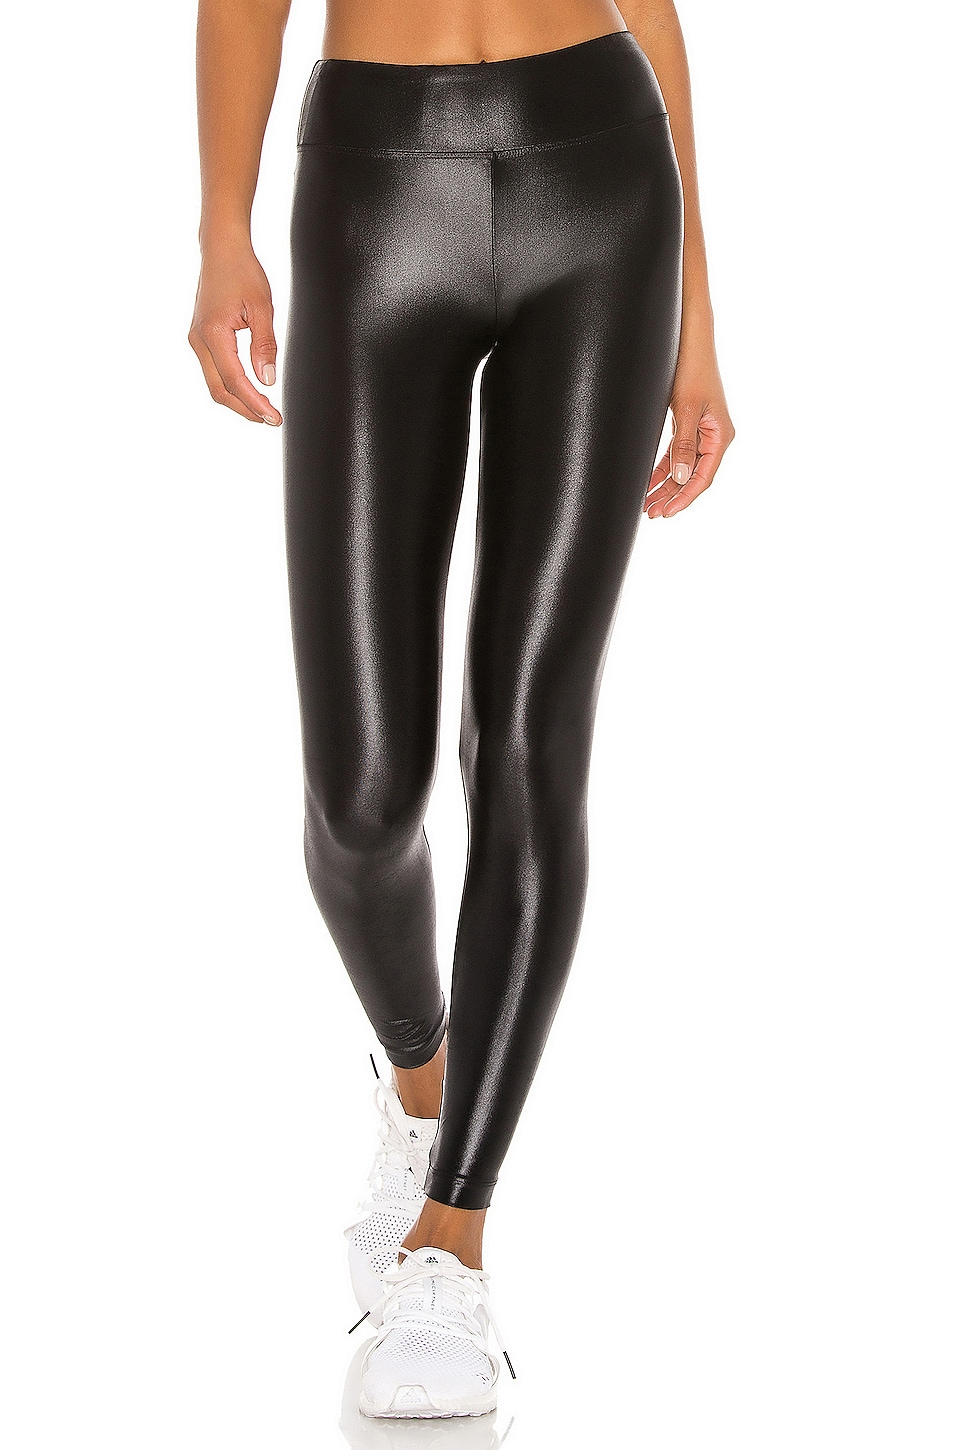 KORAL Lustrous Legging in Black